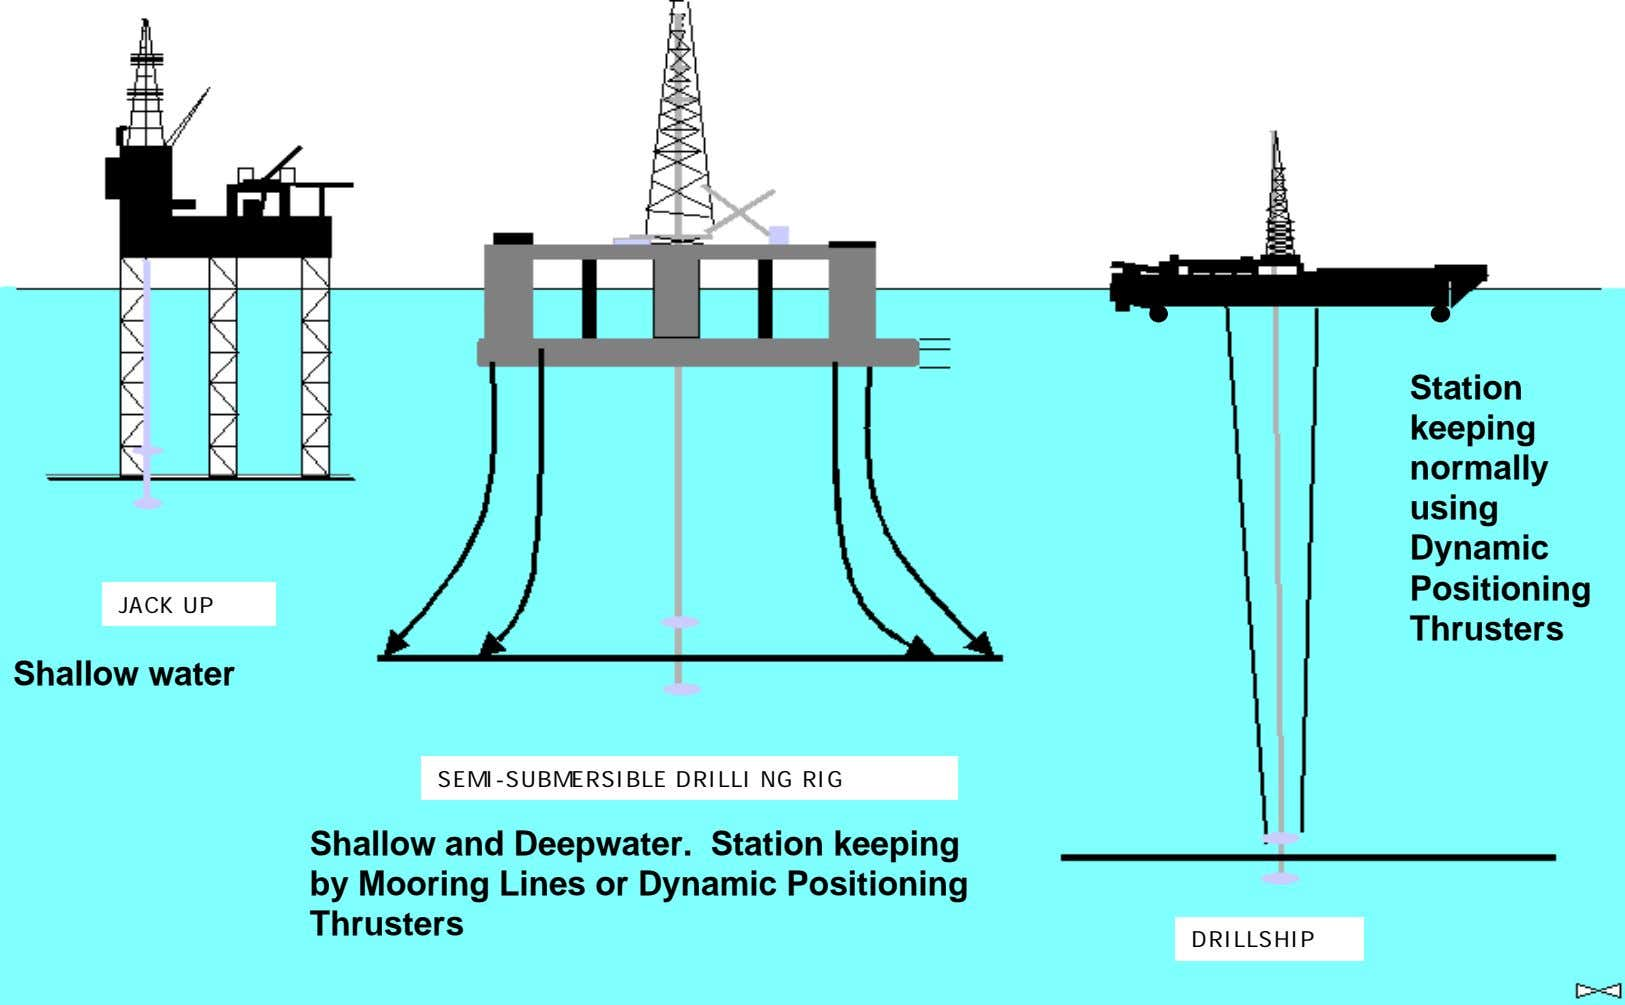 Station keeping normally using Dynamic Positioning JACK UP Thrusters Shallow water SEMI-SUBMERSIBLE DRILLI NG RIG